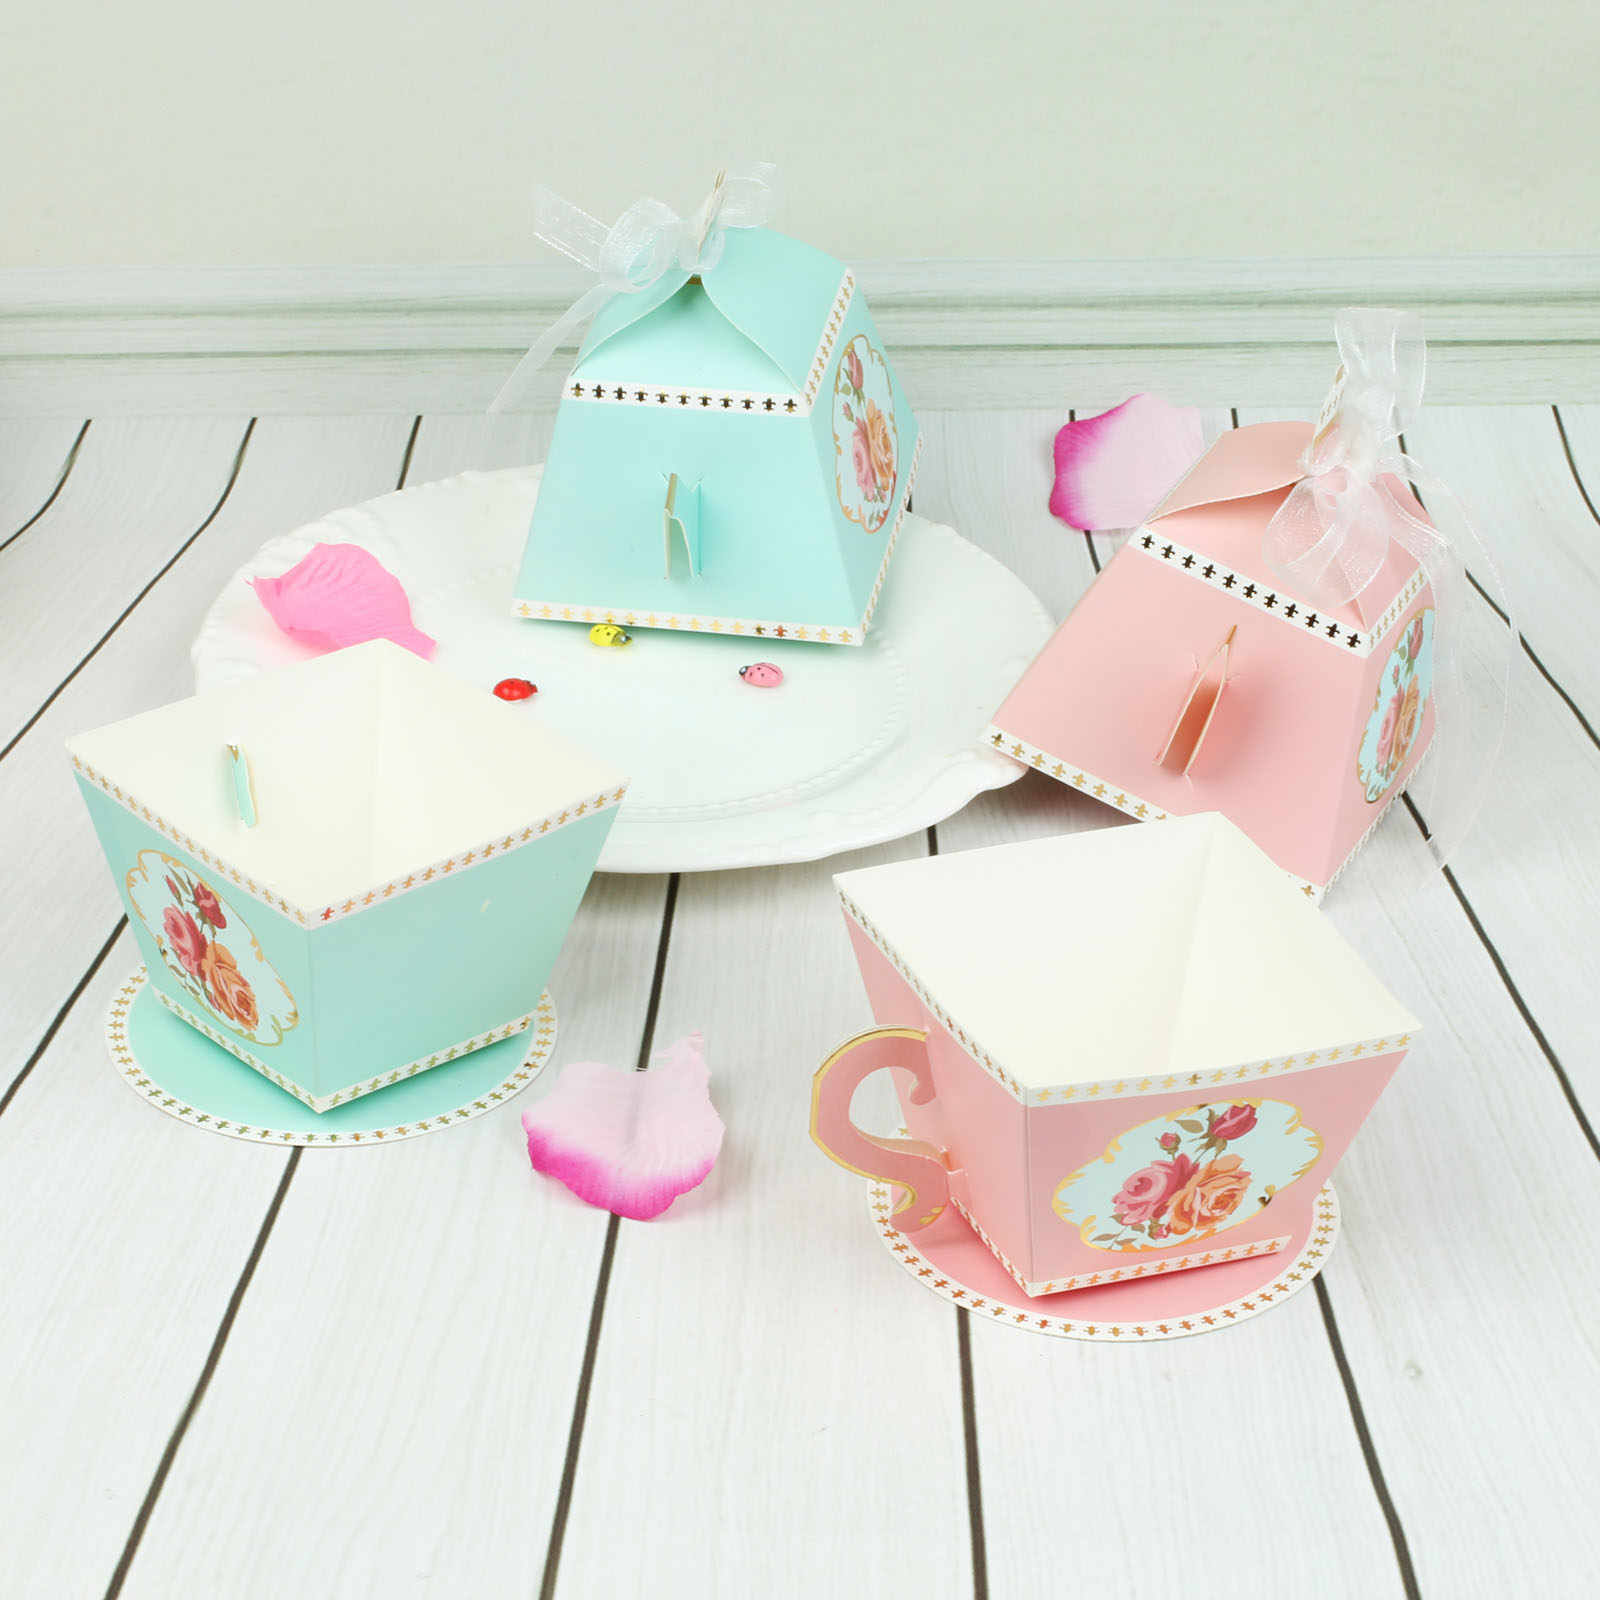 10Pcs Candy Boxes Tea Party Favors Wedding Gifts For Guests Bridal Shower Birthday Party Baby Shower Decoration